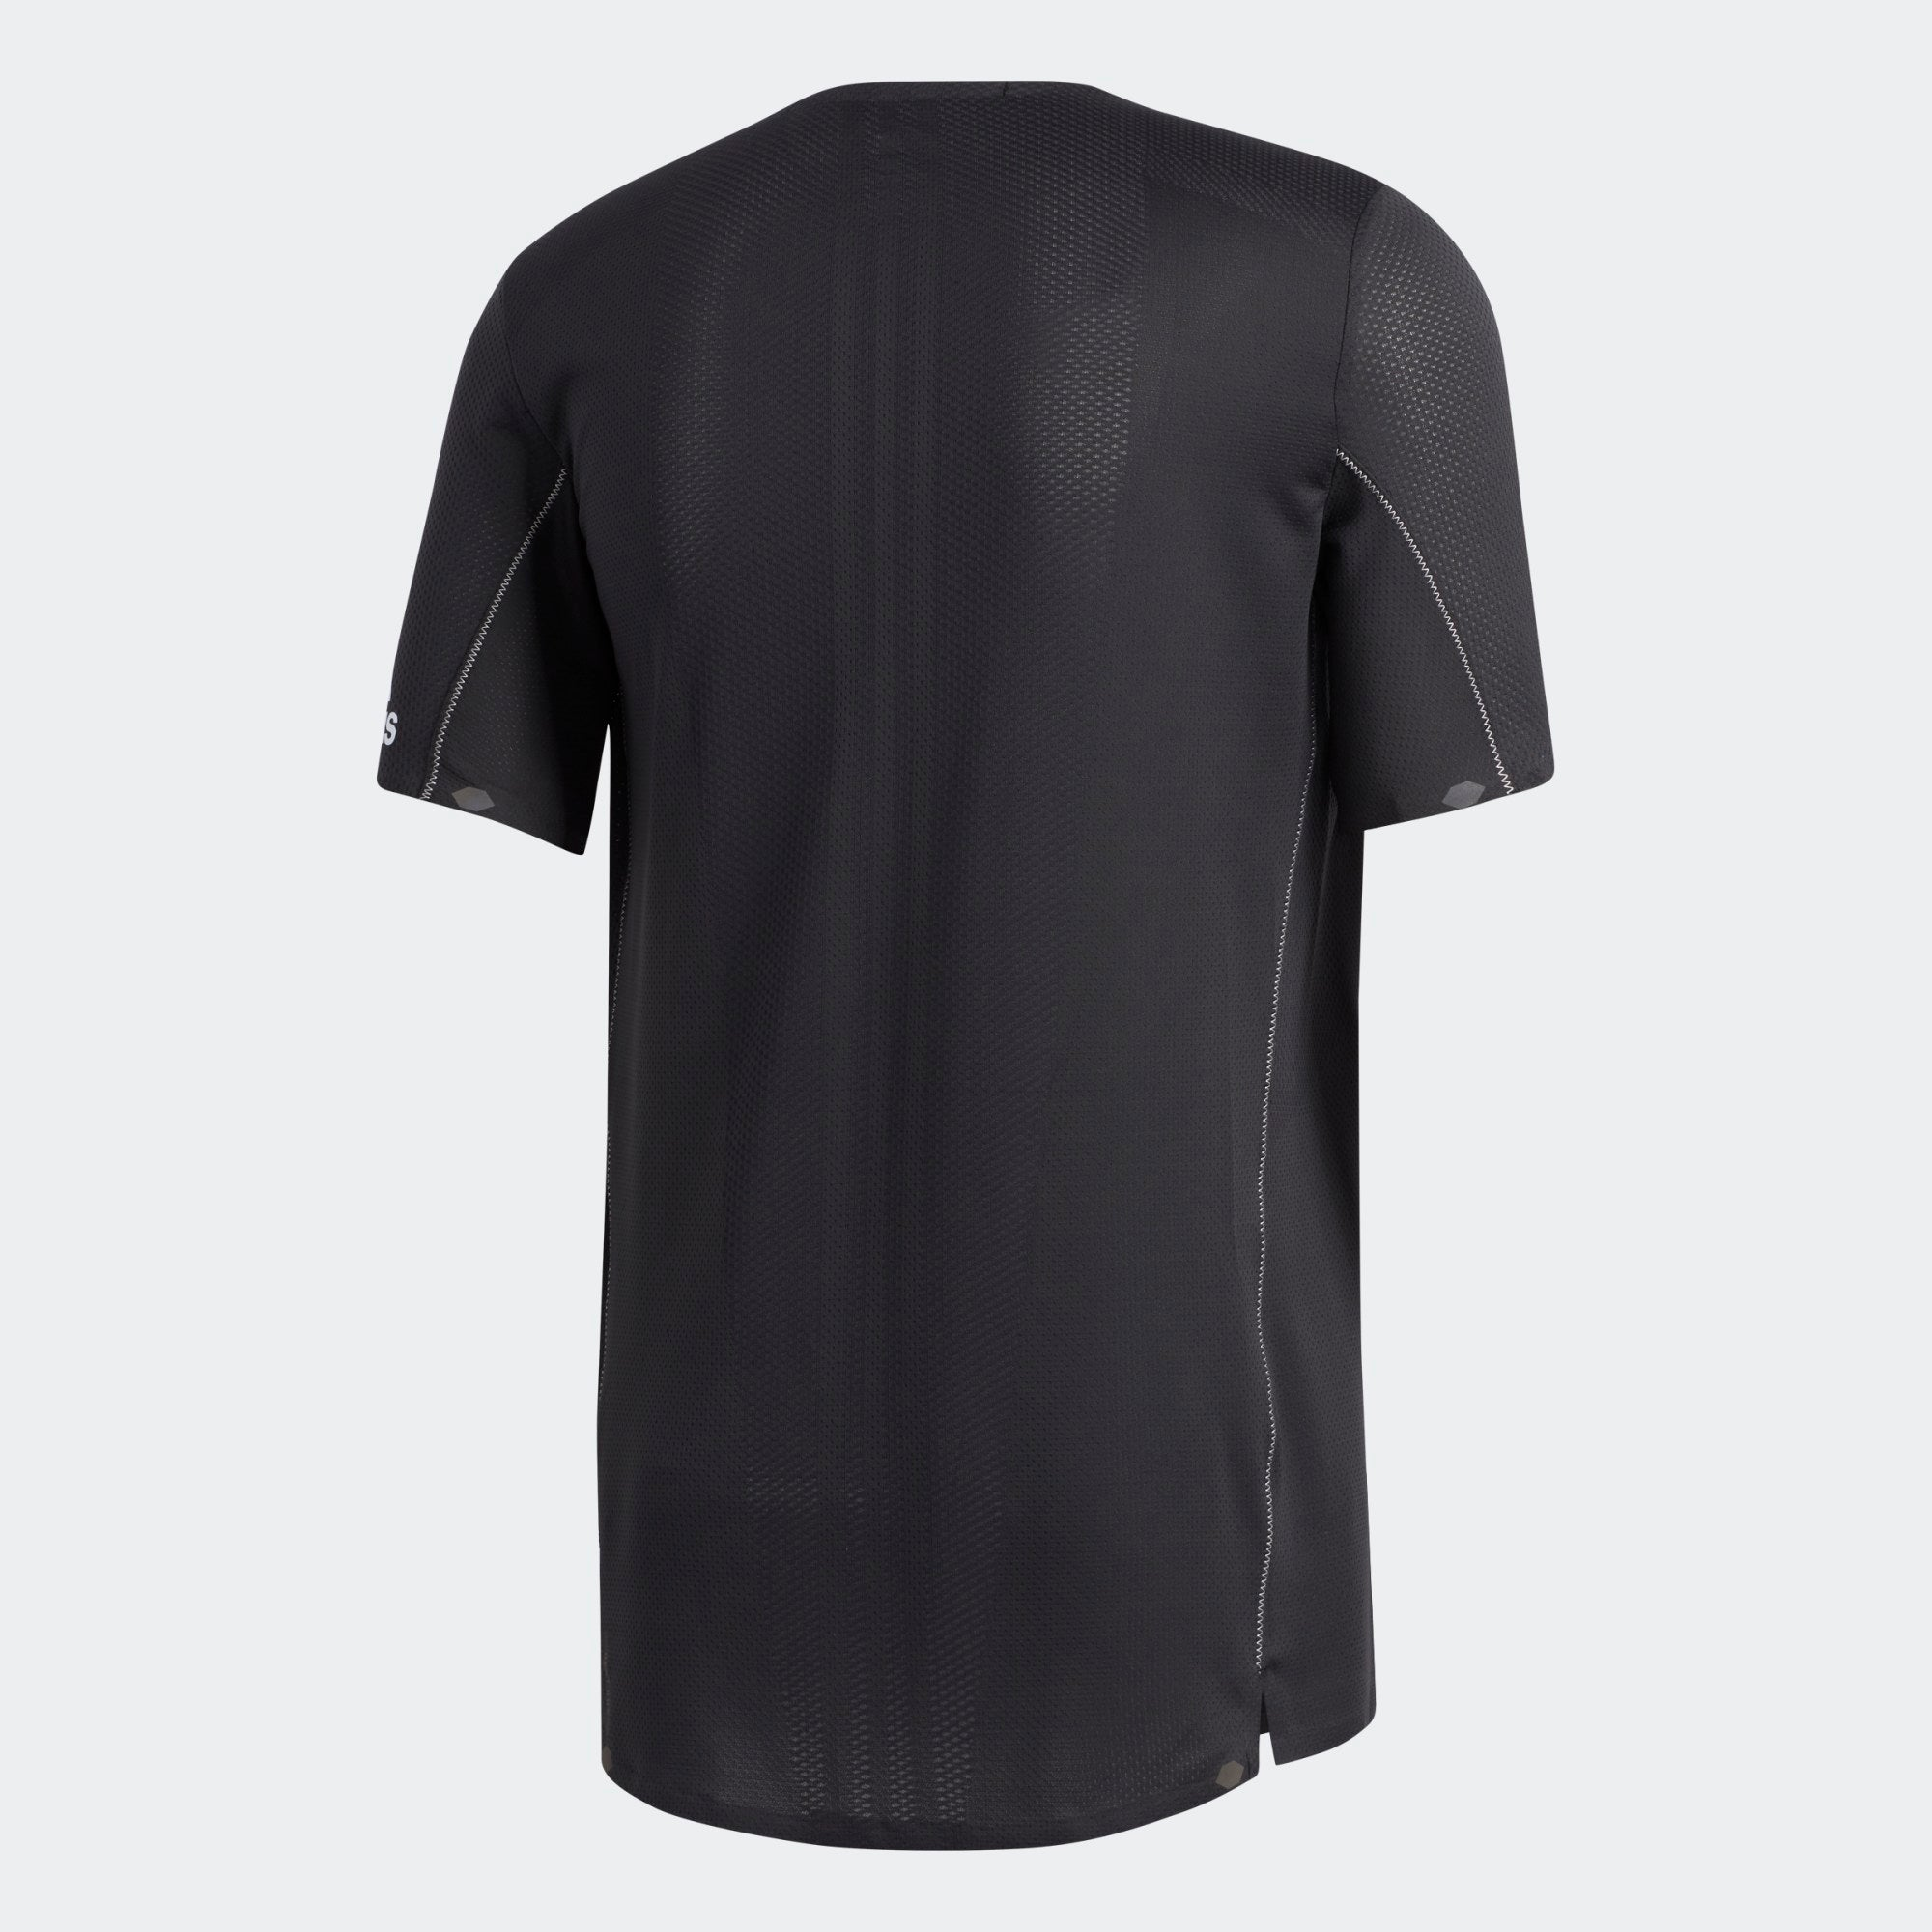 Adidas Men's Heat.Rdy Tee